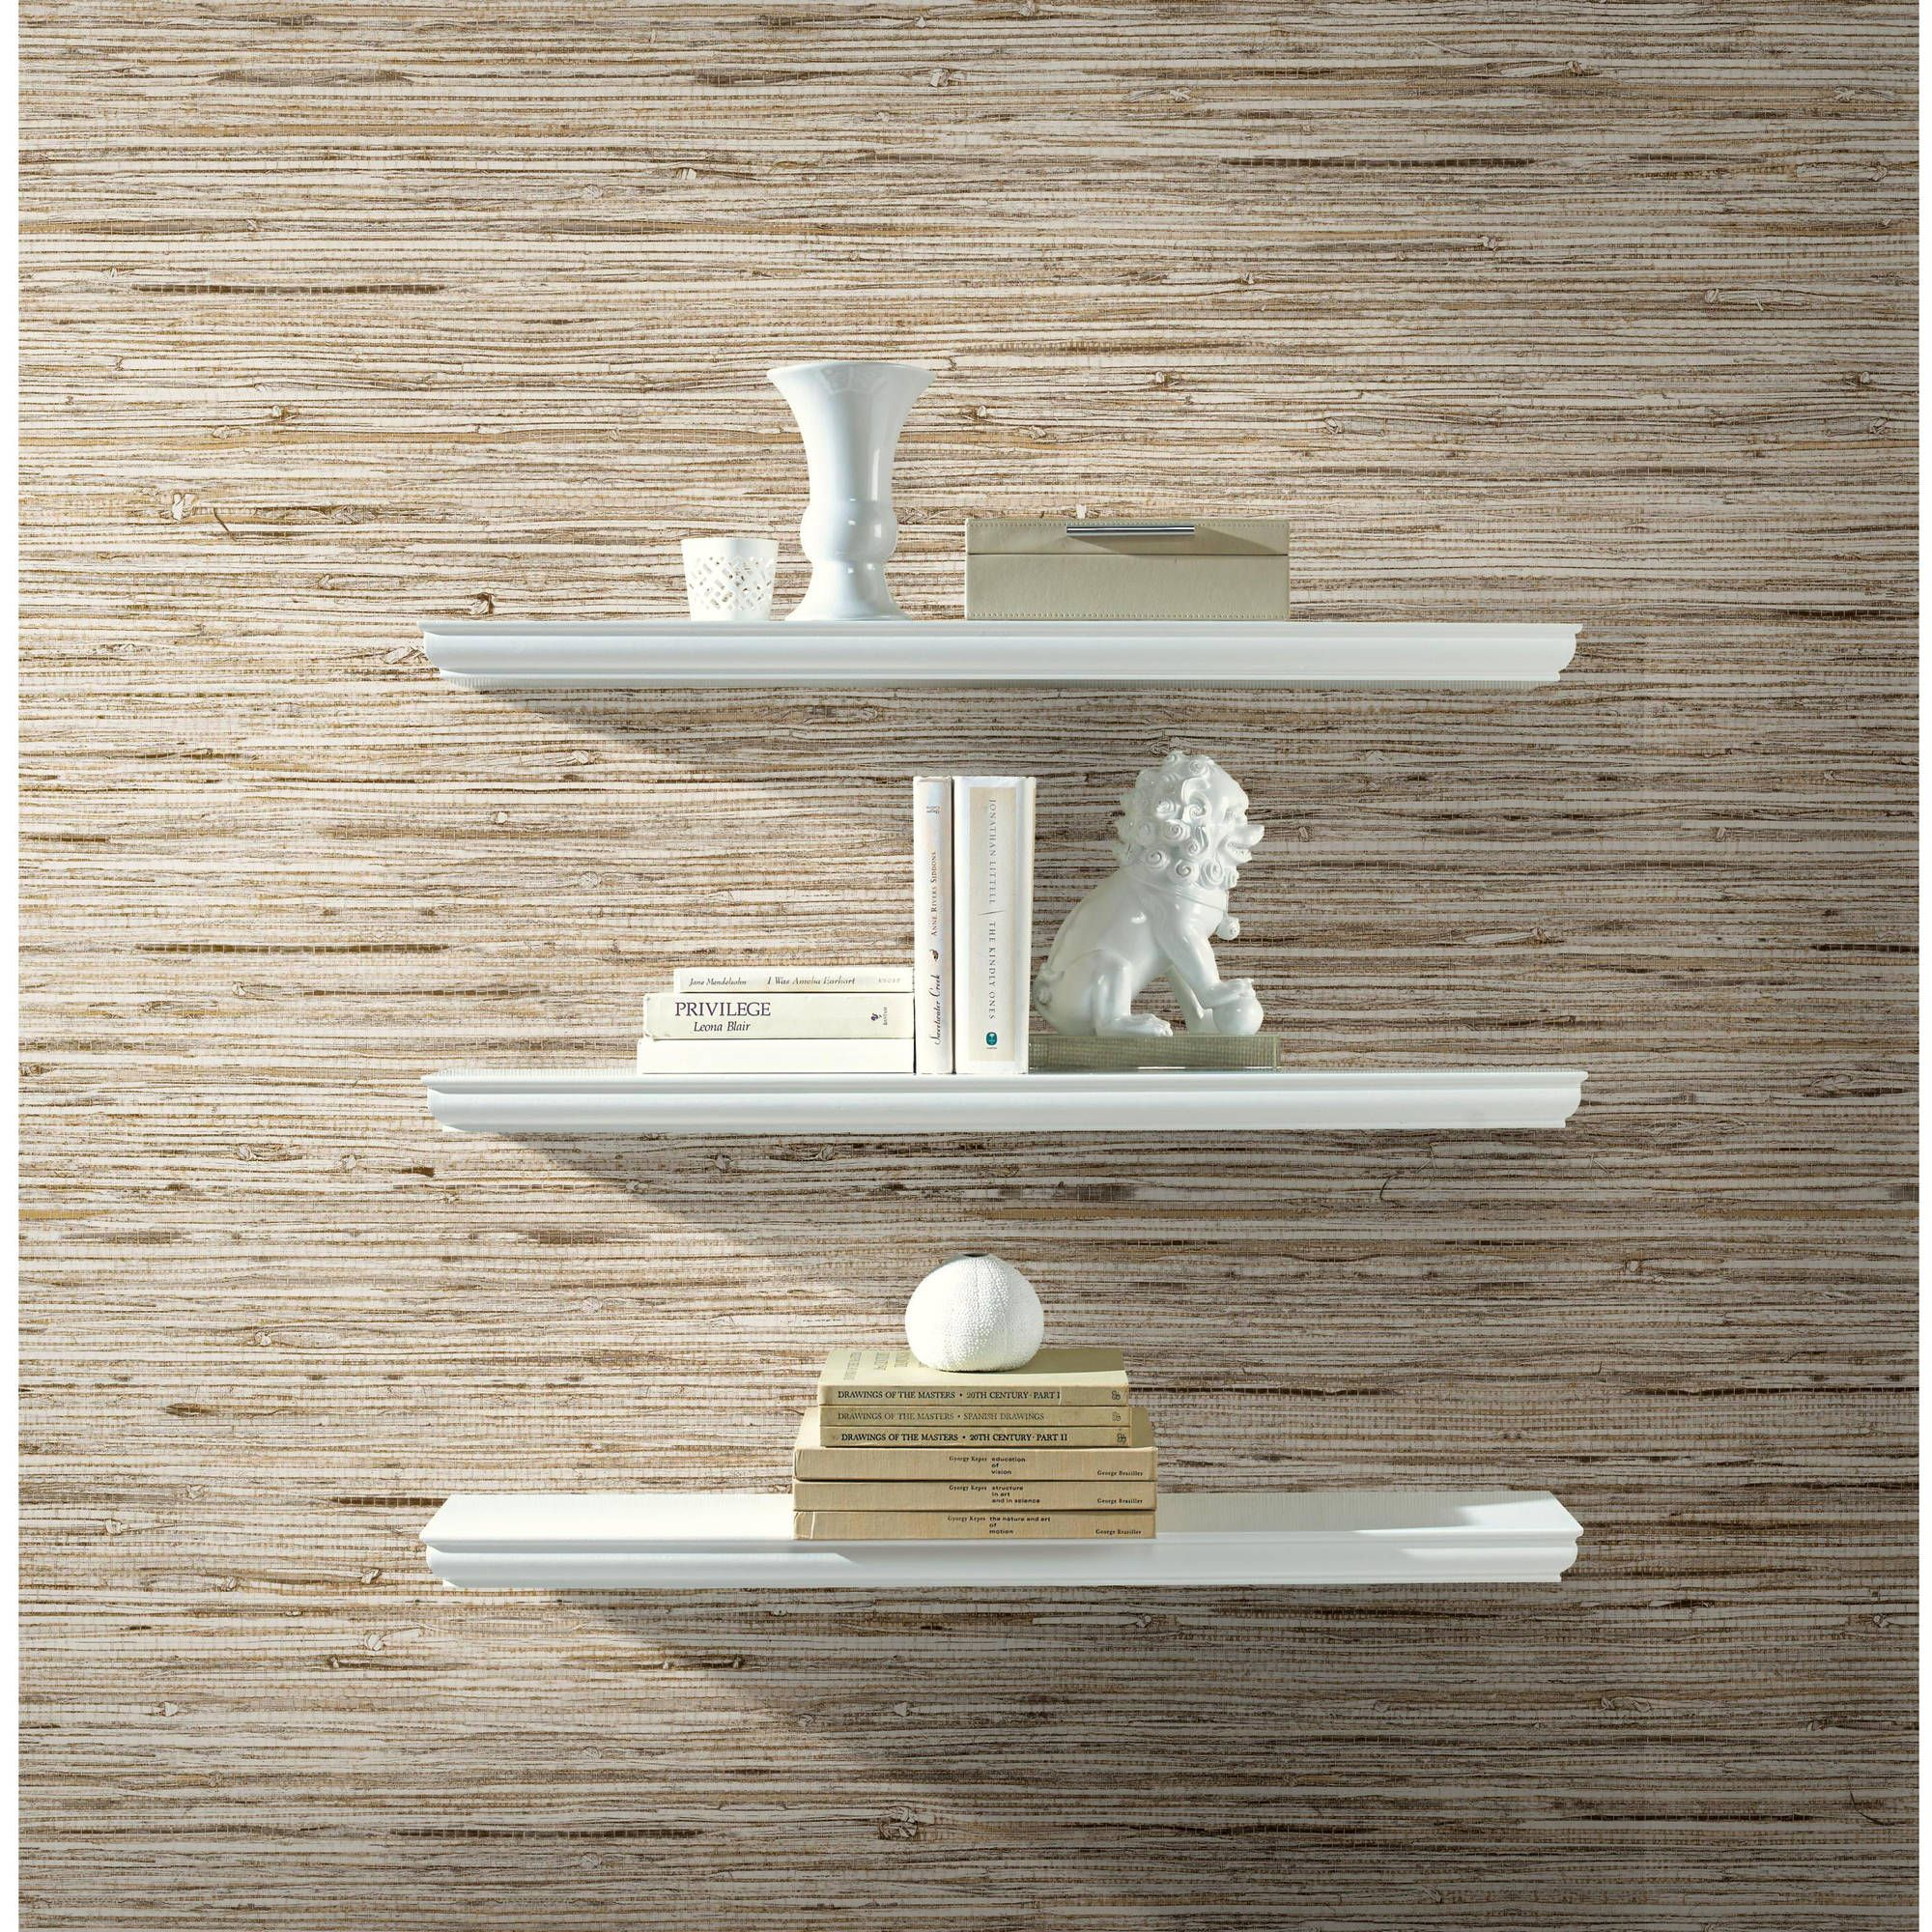 Roommates Grasscloth Peel And Stick Wall Decor Wallpaper Walmart Com Peel And Stick Wallpaper Grasscloth Wallpaper Grasscloth